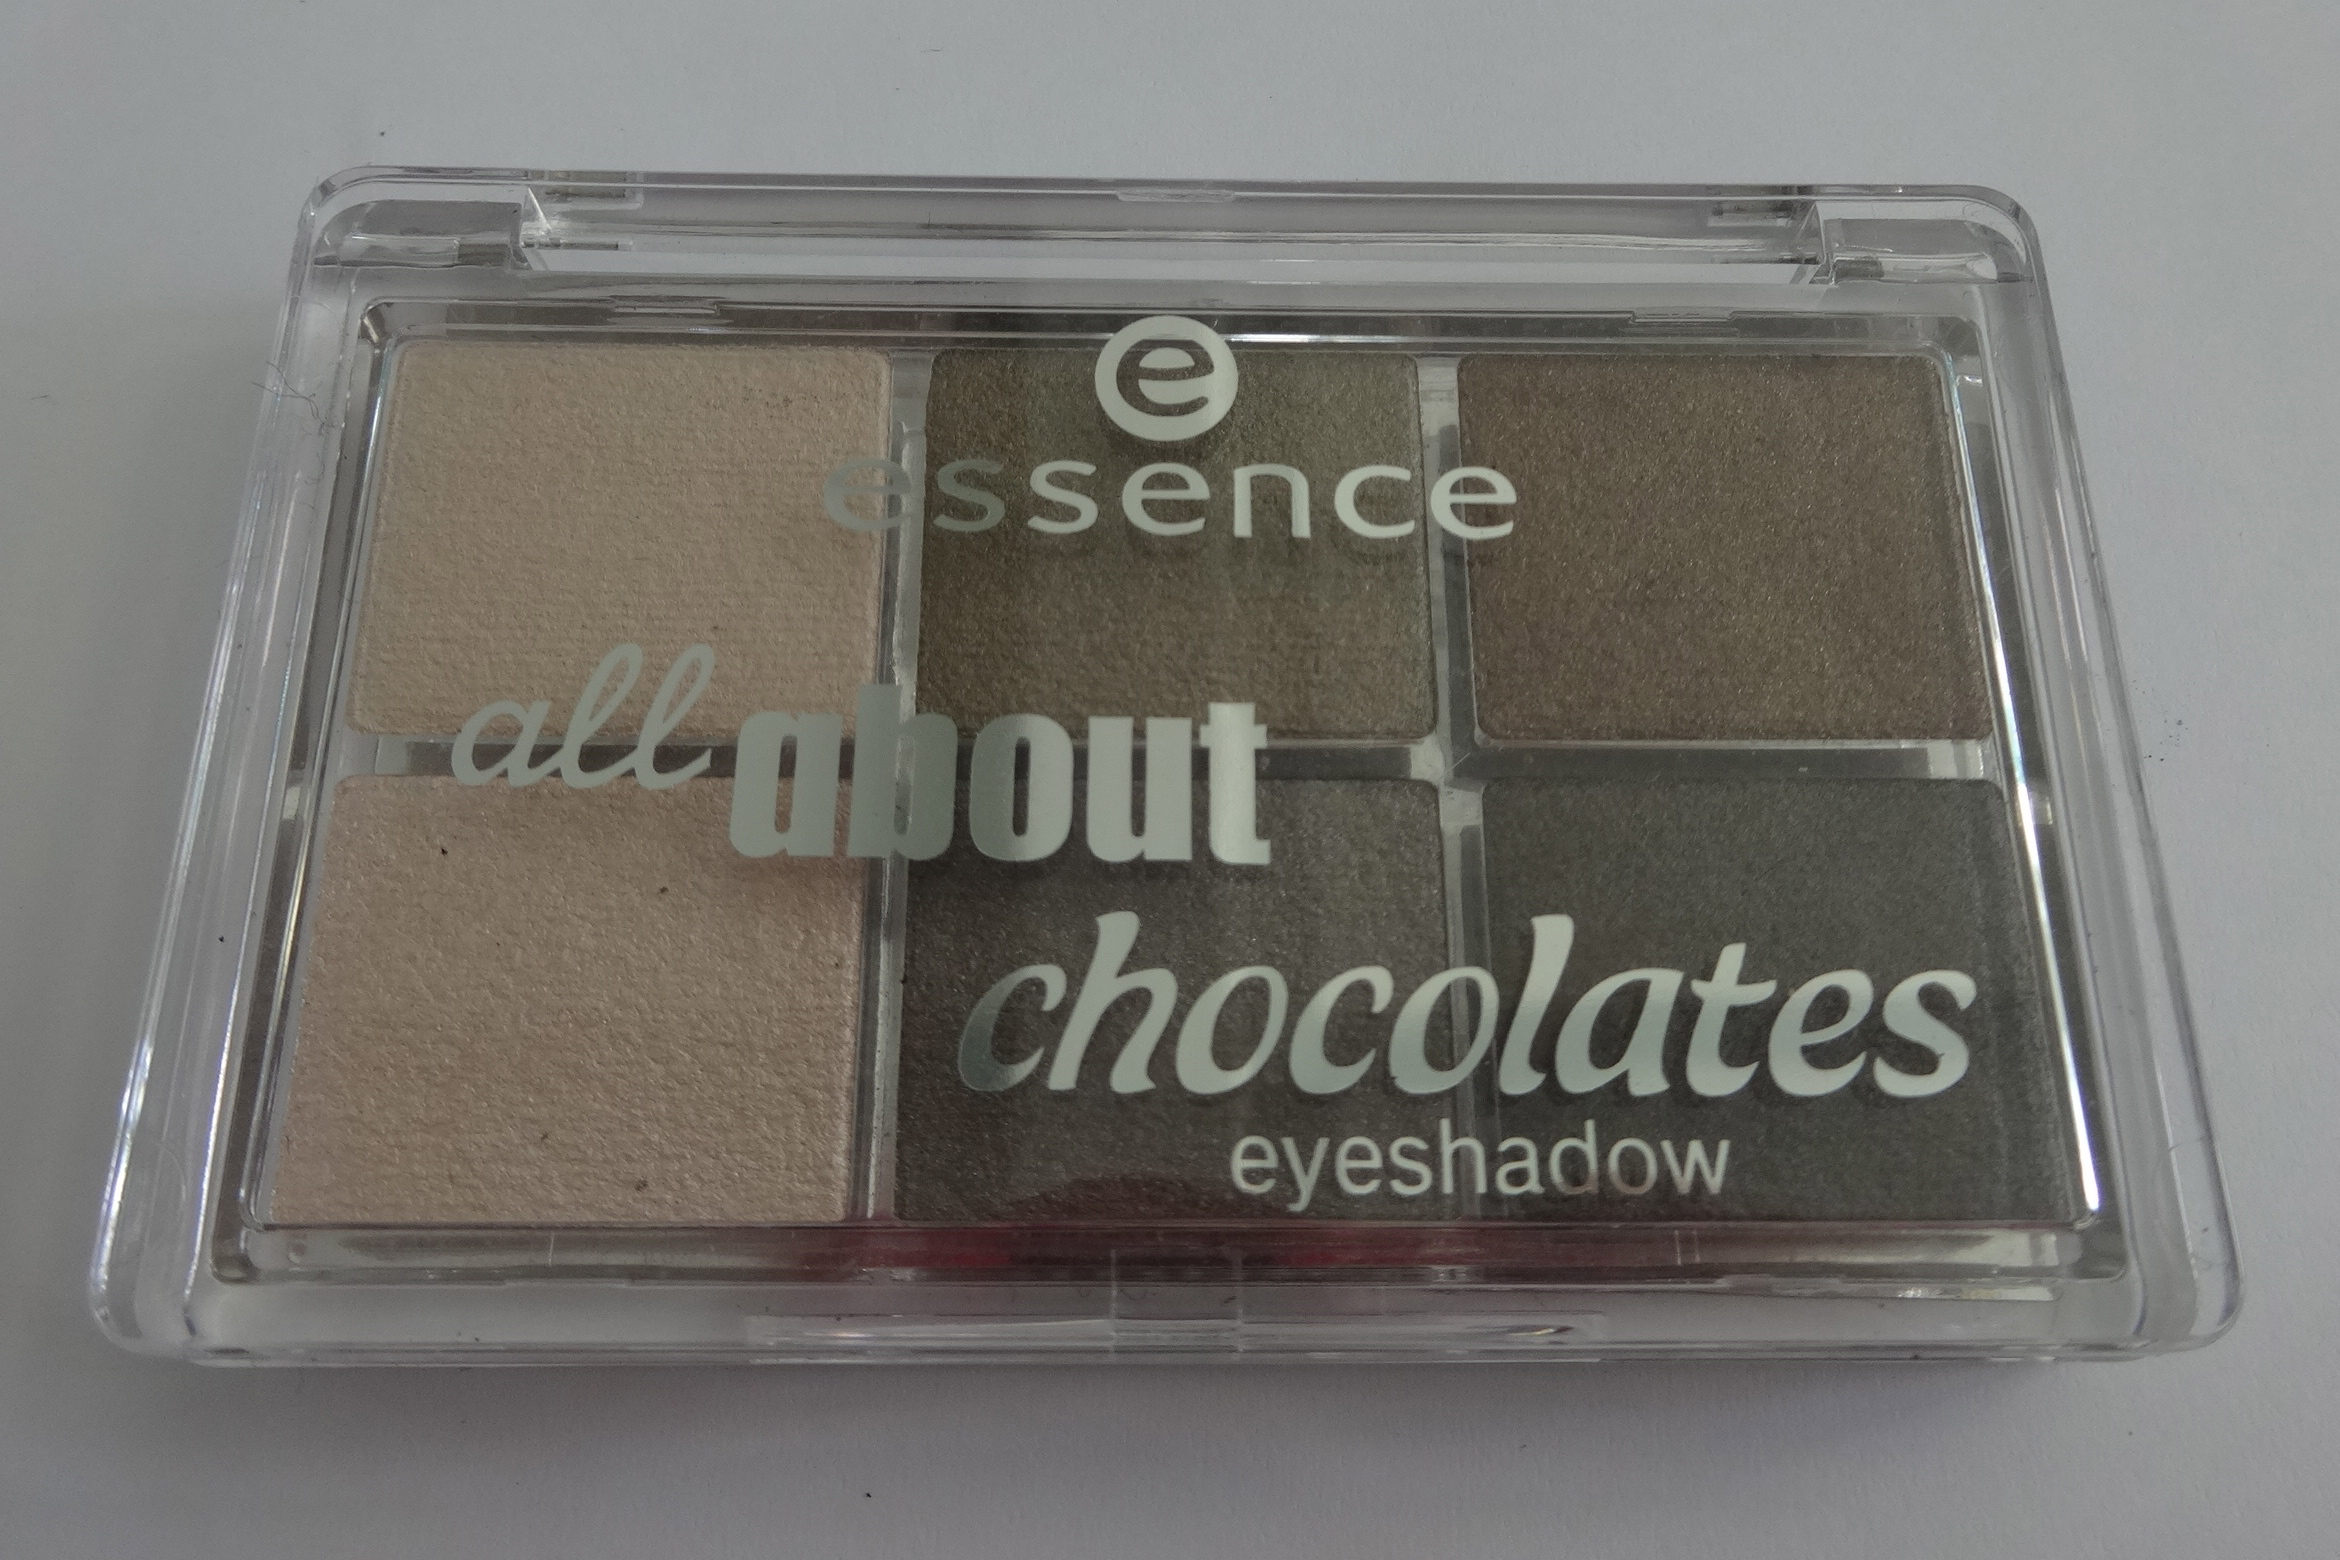 essence 01 chocolates - all about chocolates eyeshadow palette